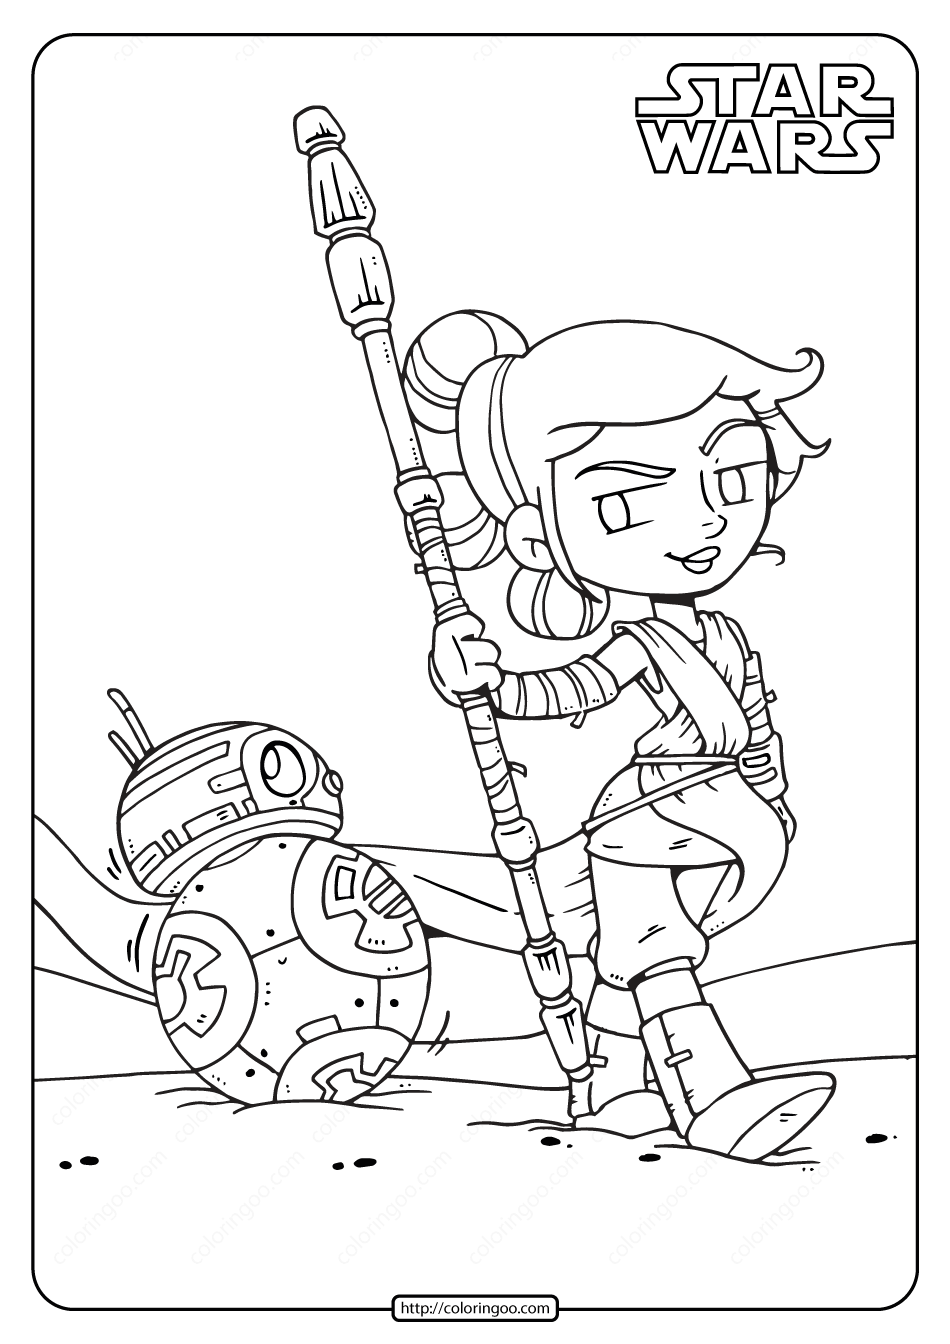 Printable Star Wars Rey And Bb 8 Coloring Pages Star Wars Coloring Sheet Star Wars Cartoon Star Wars Colors